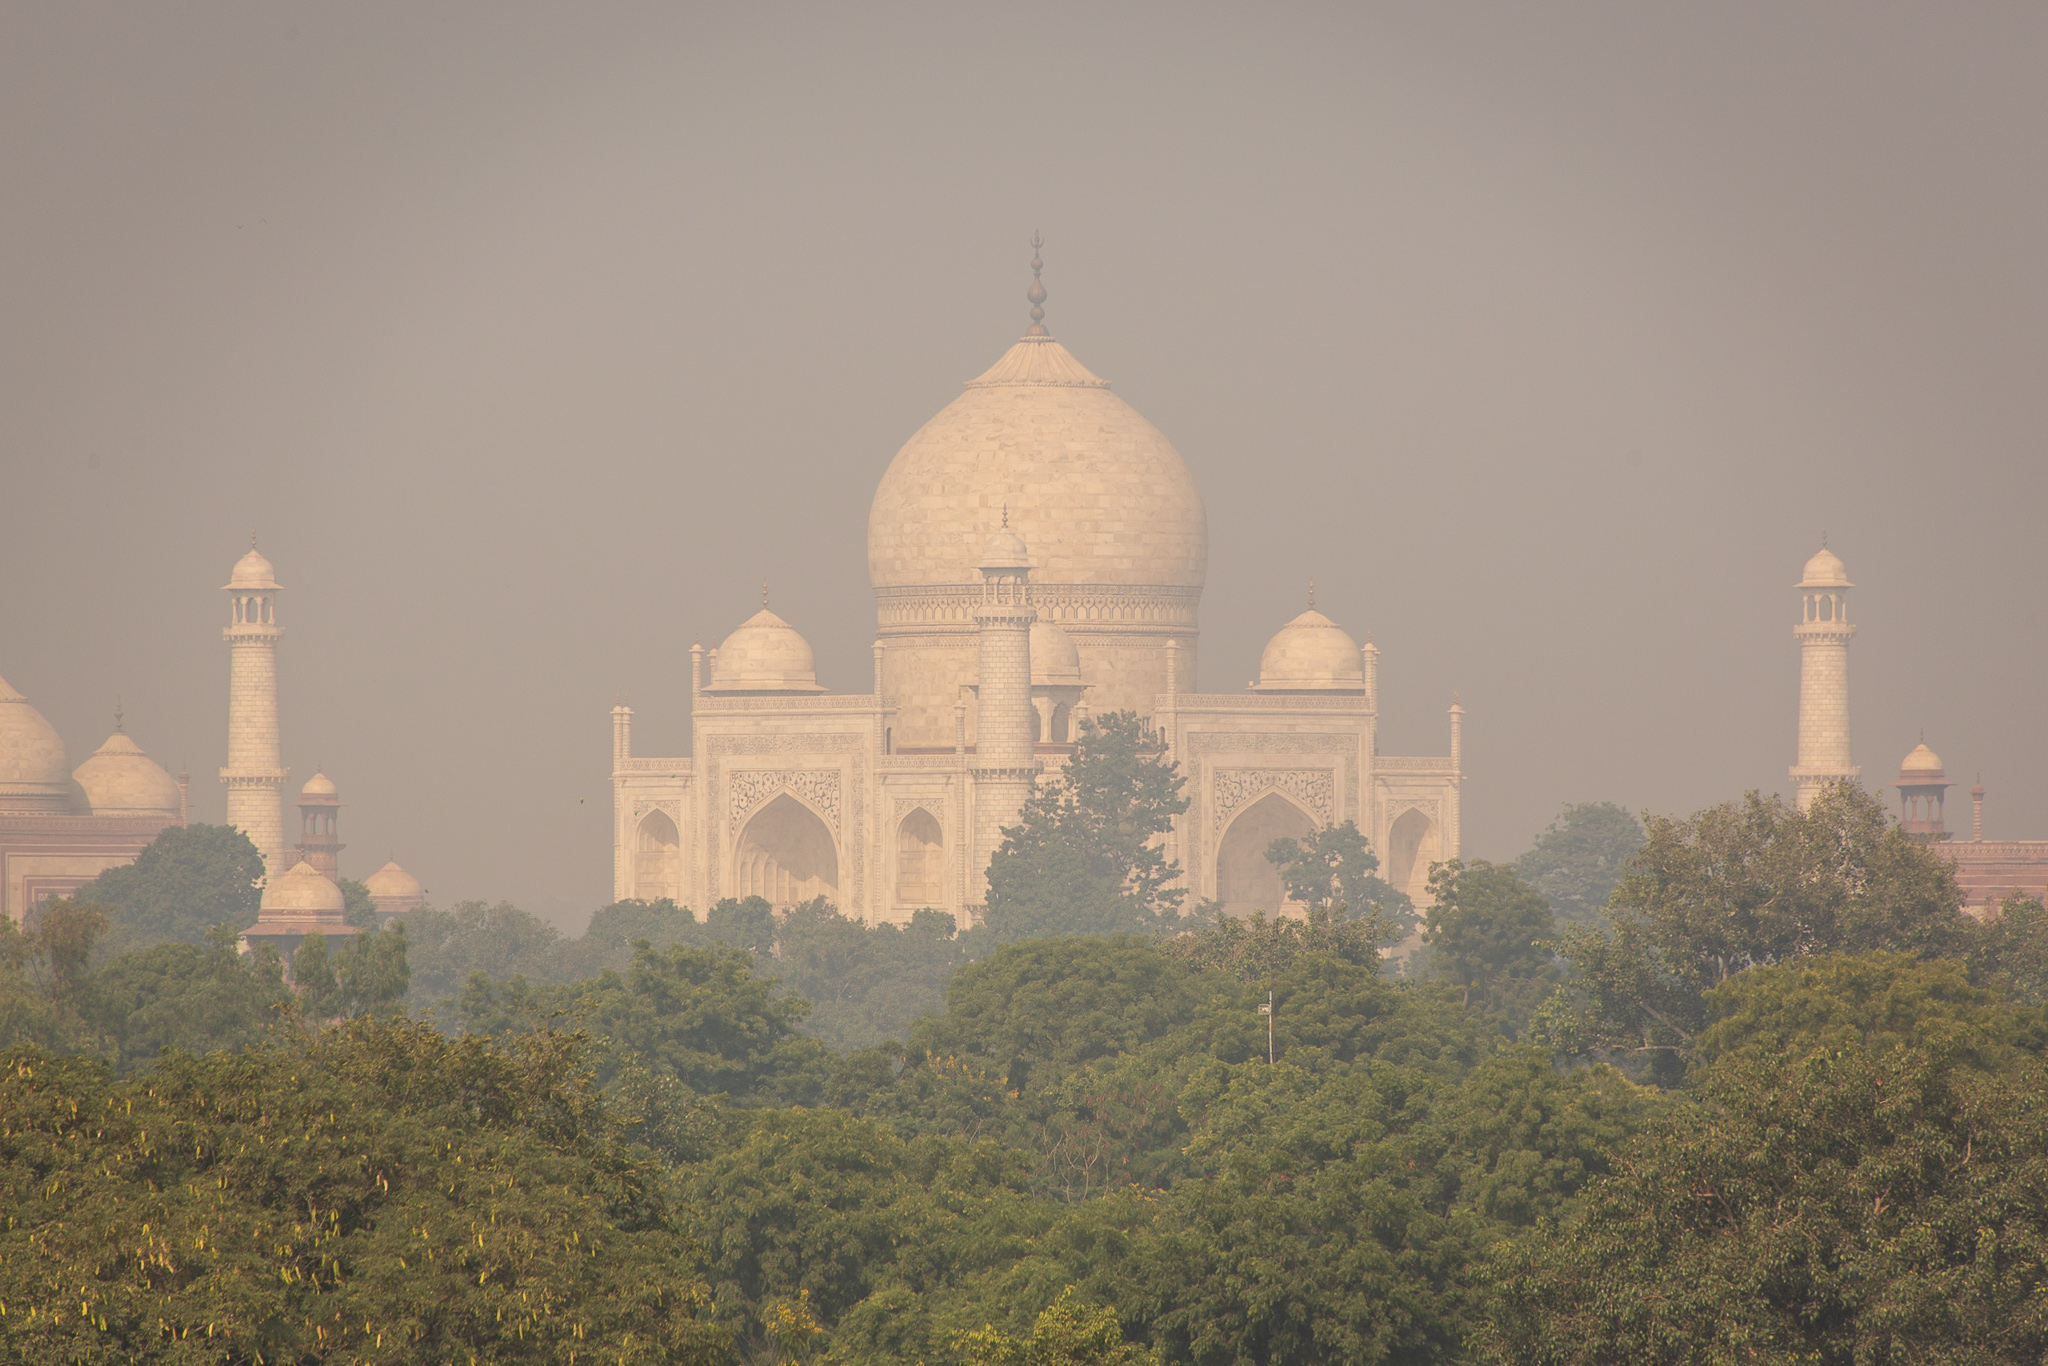 After we had visited The Taj Mahal we stopped at a nearby Hotel for breakfast, with the best view!